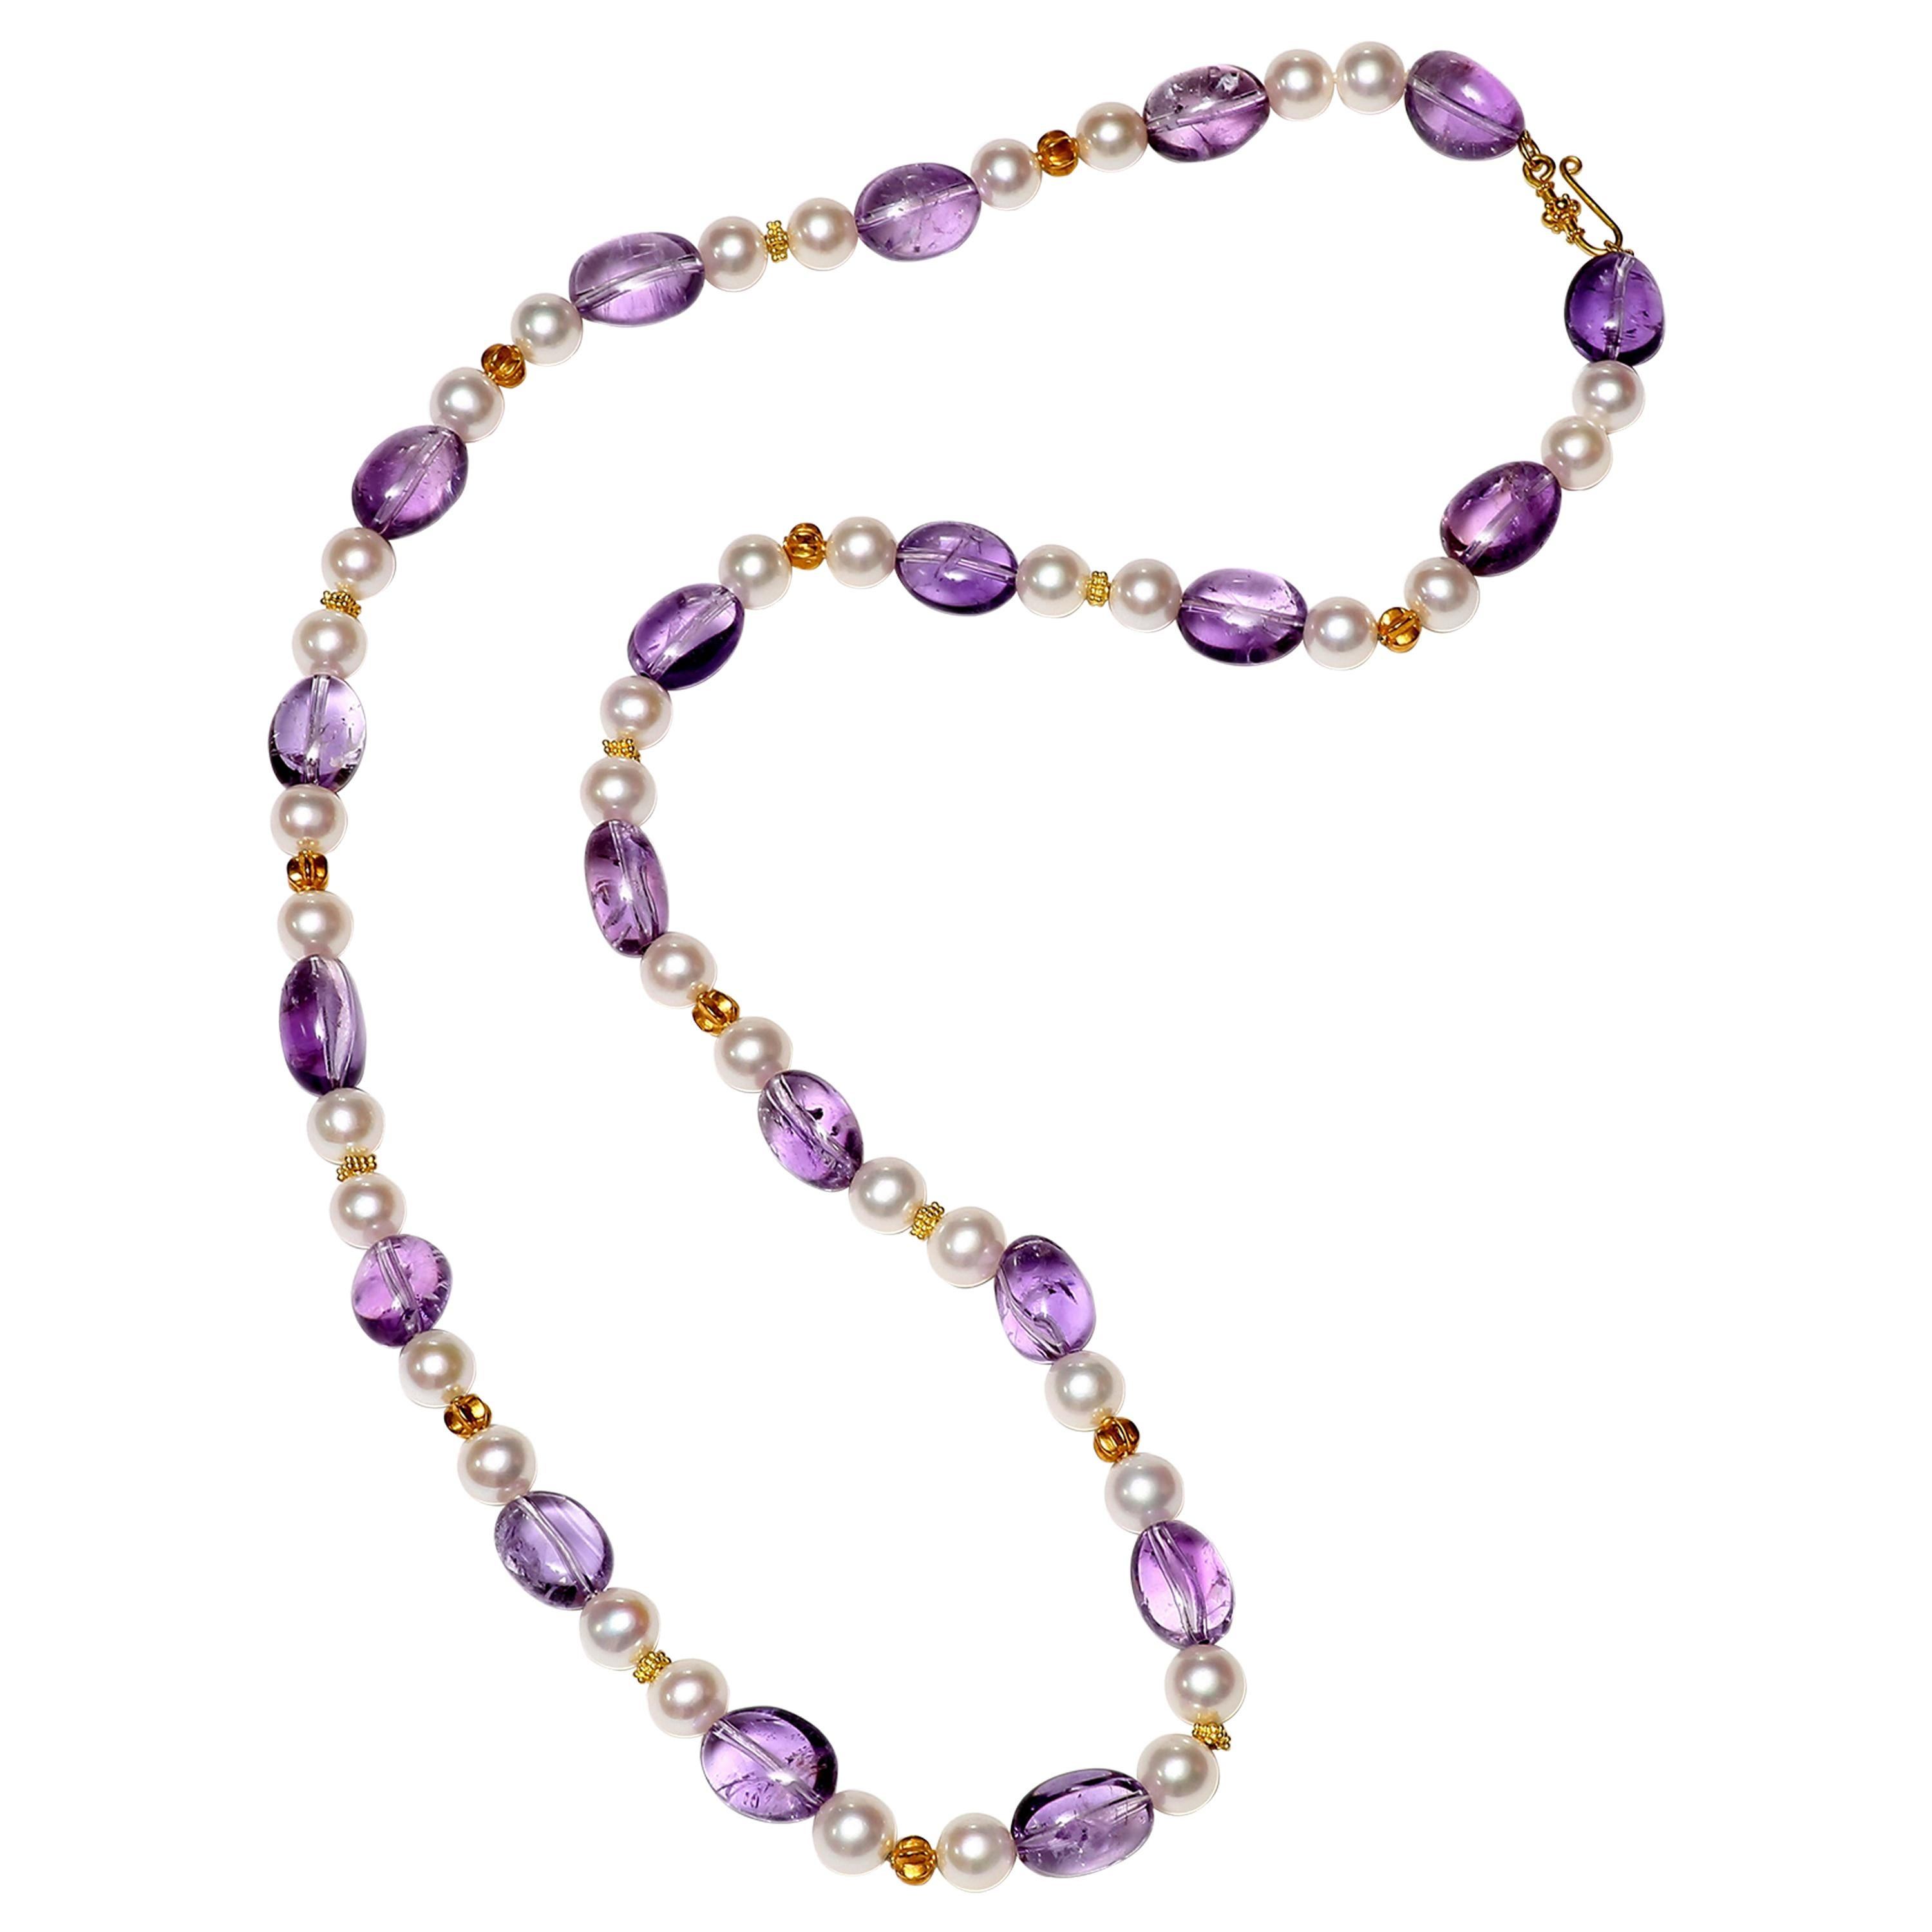 Amethyst, Freshwater Pearl and Gold Necklace